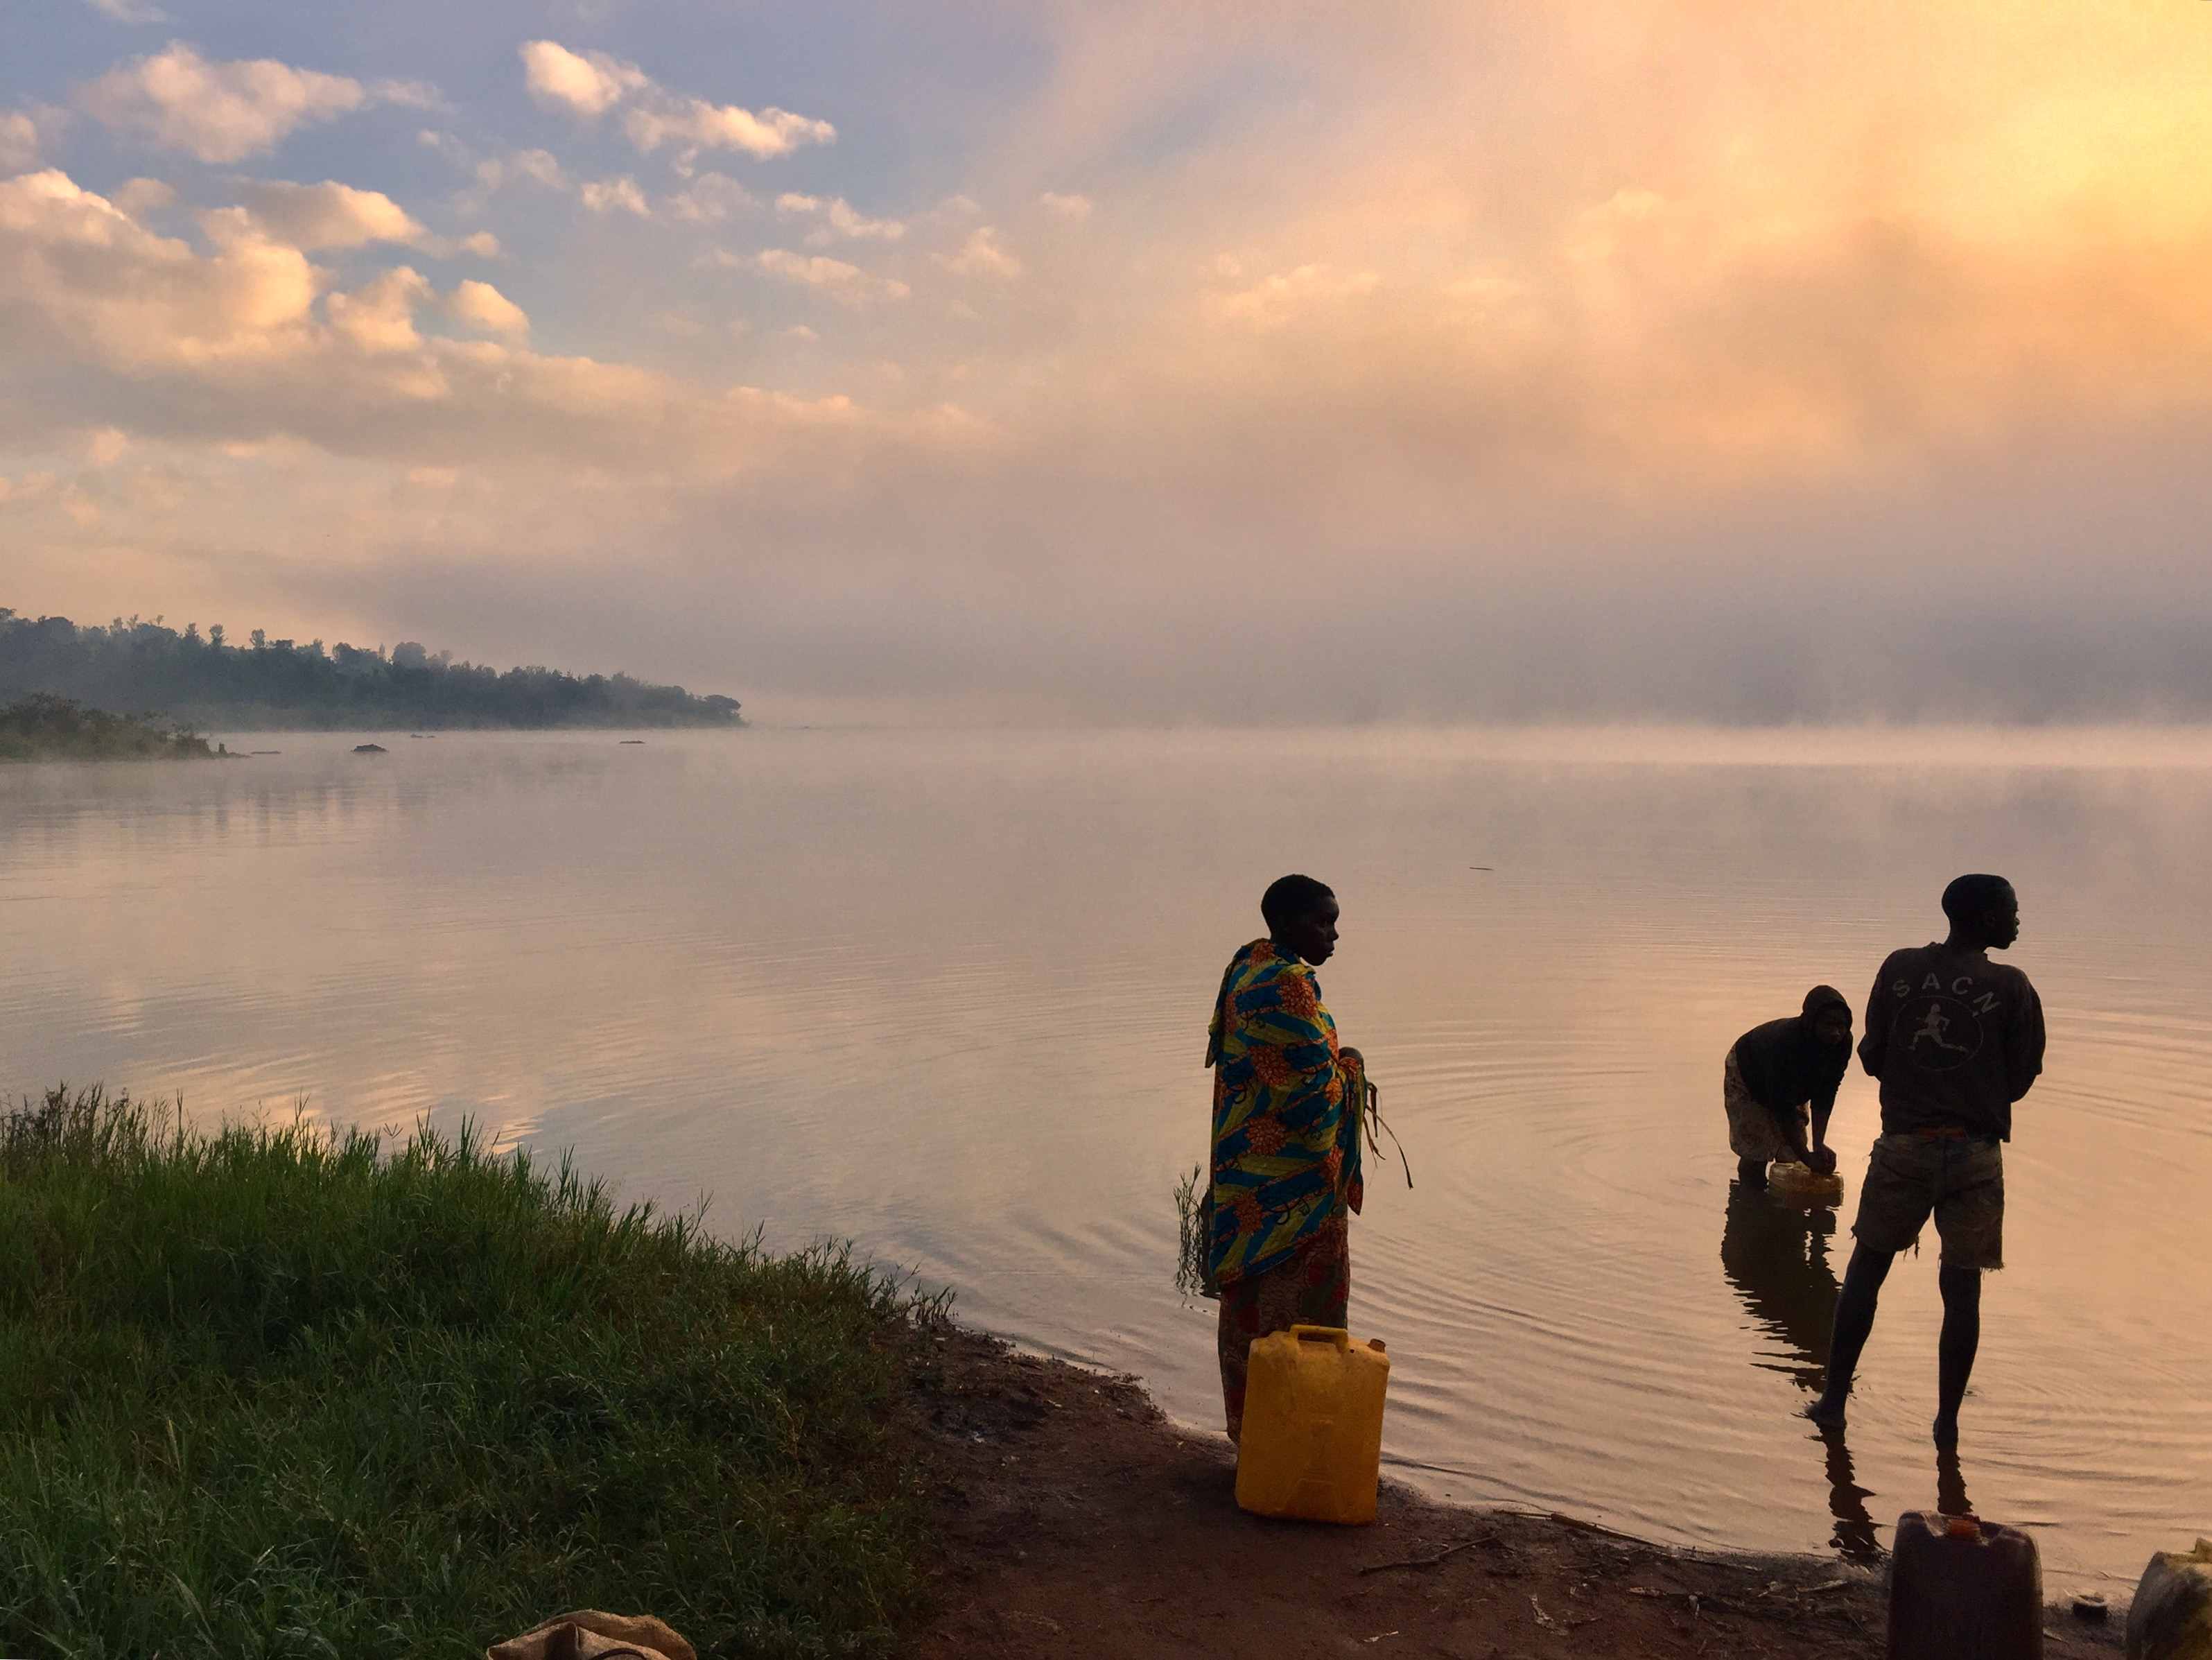 People getting water at Lac Rwihinda, Kirundo - Burundi Travel Blog